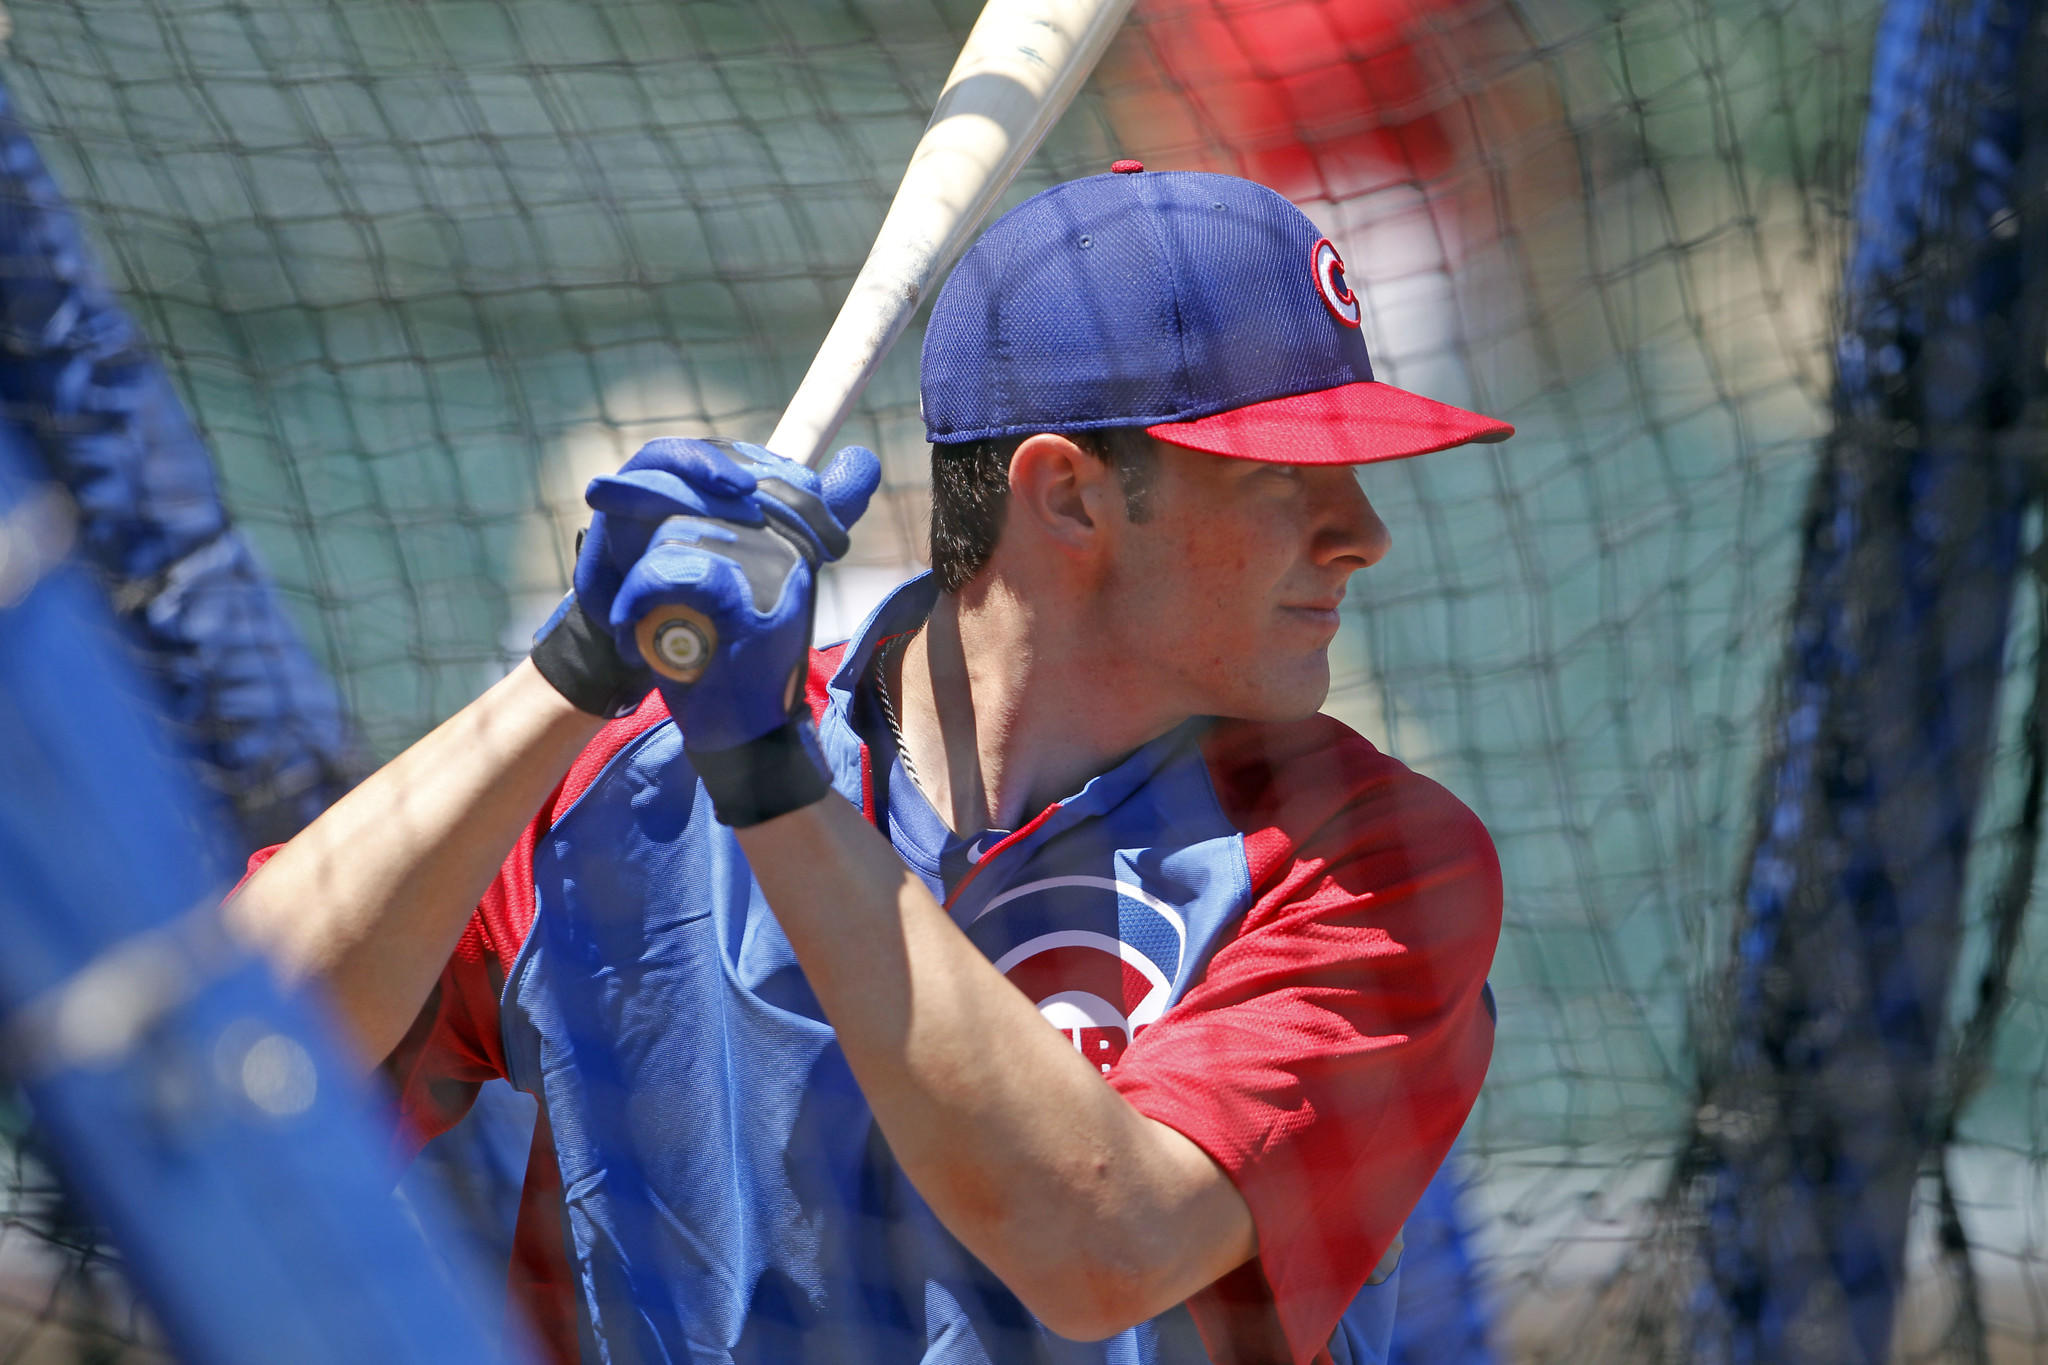 Kris Bryant takes batting practice before a game at Wrigley Field on July 12.